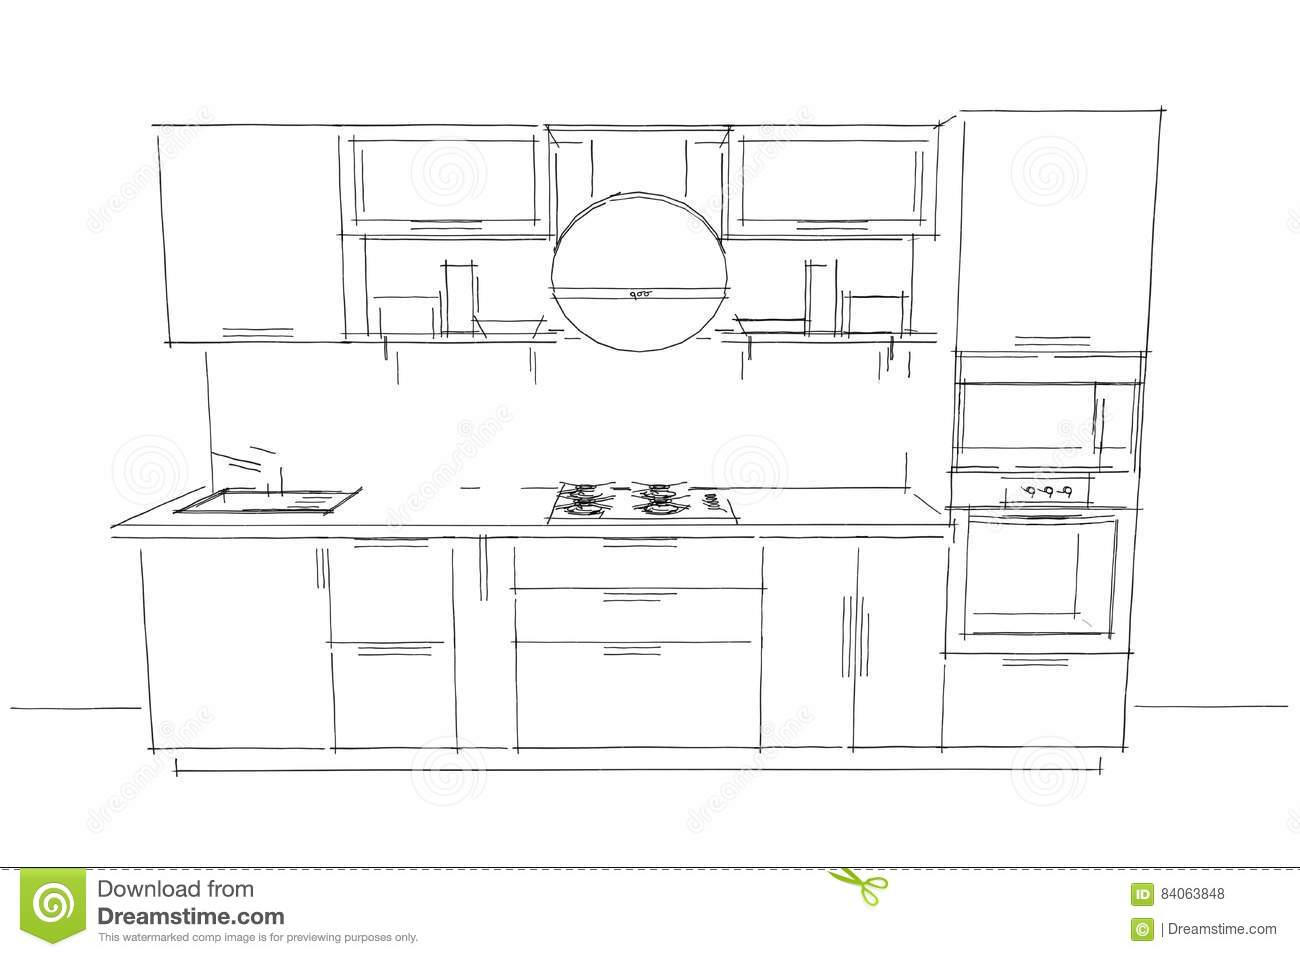 Sketch Drawing Of 3d Modern Kitchen Interior With Round Hood Stock Illustration Illustration